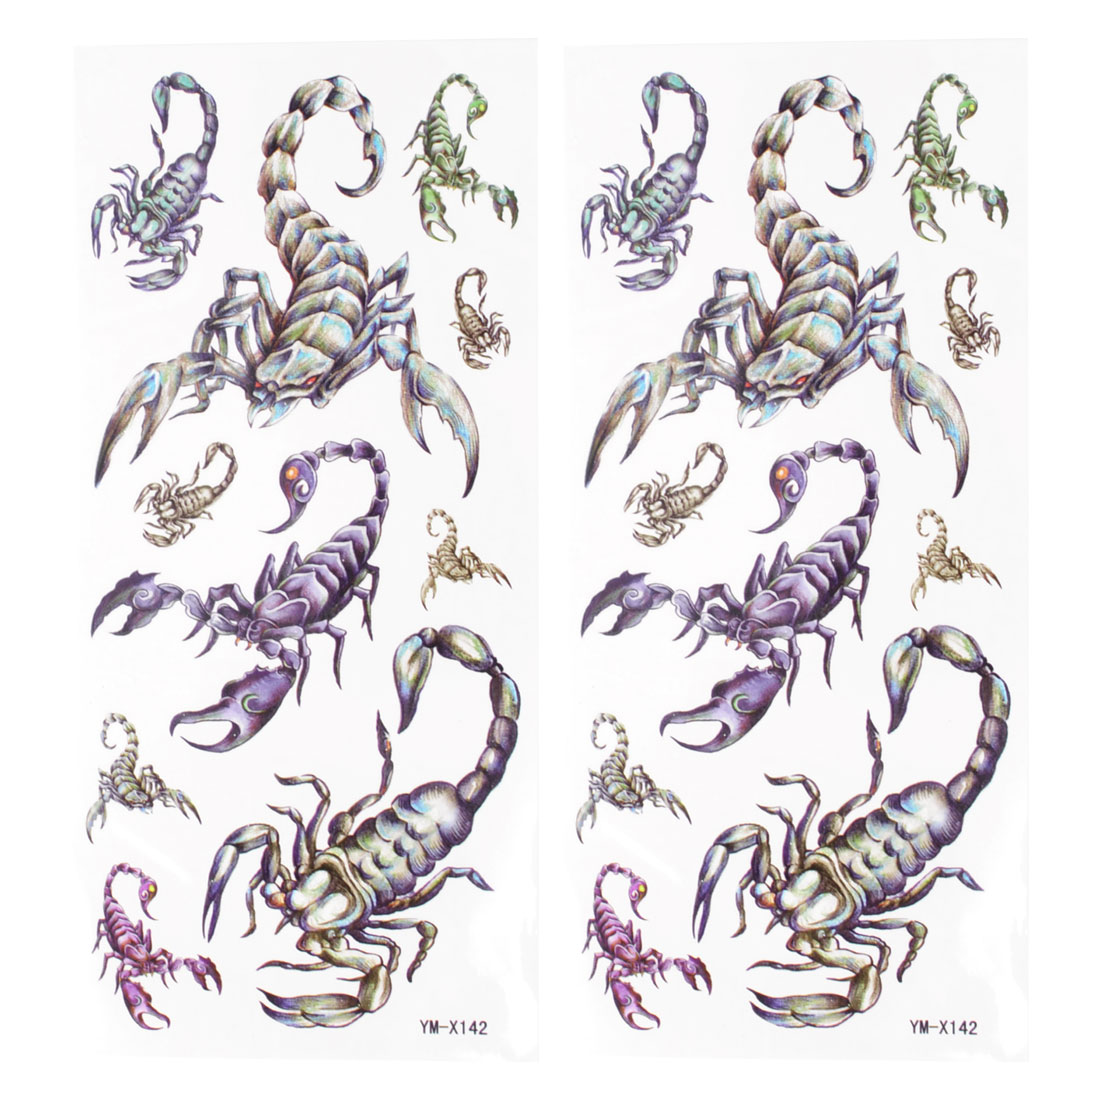 Body Art Black Scorpion Pattern Temporary Tattoo Transfer Sticker 2 Pcs